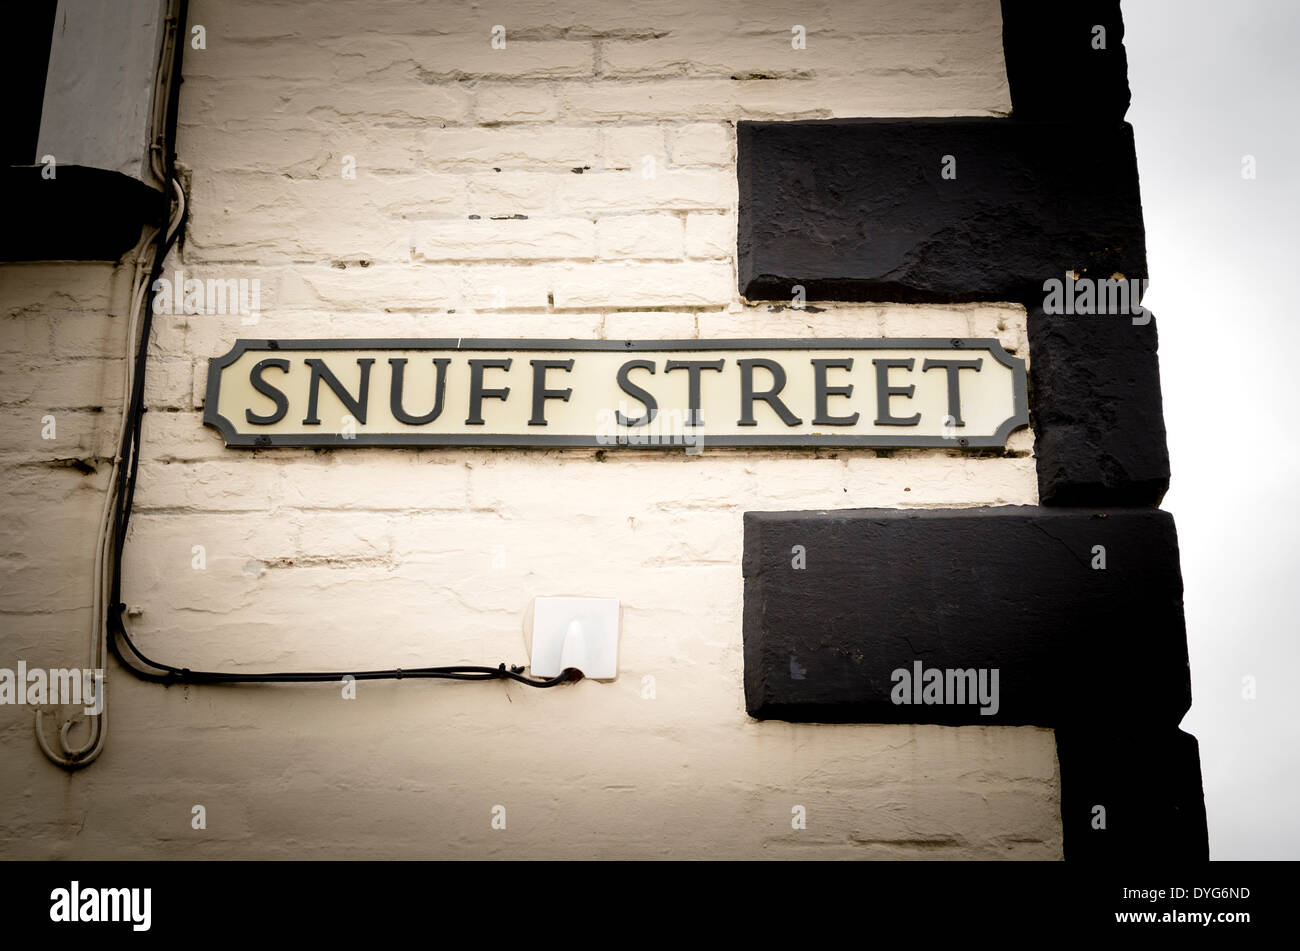 SNUFF STREET name plate in English town reflecting